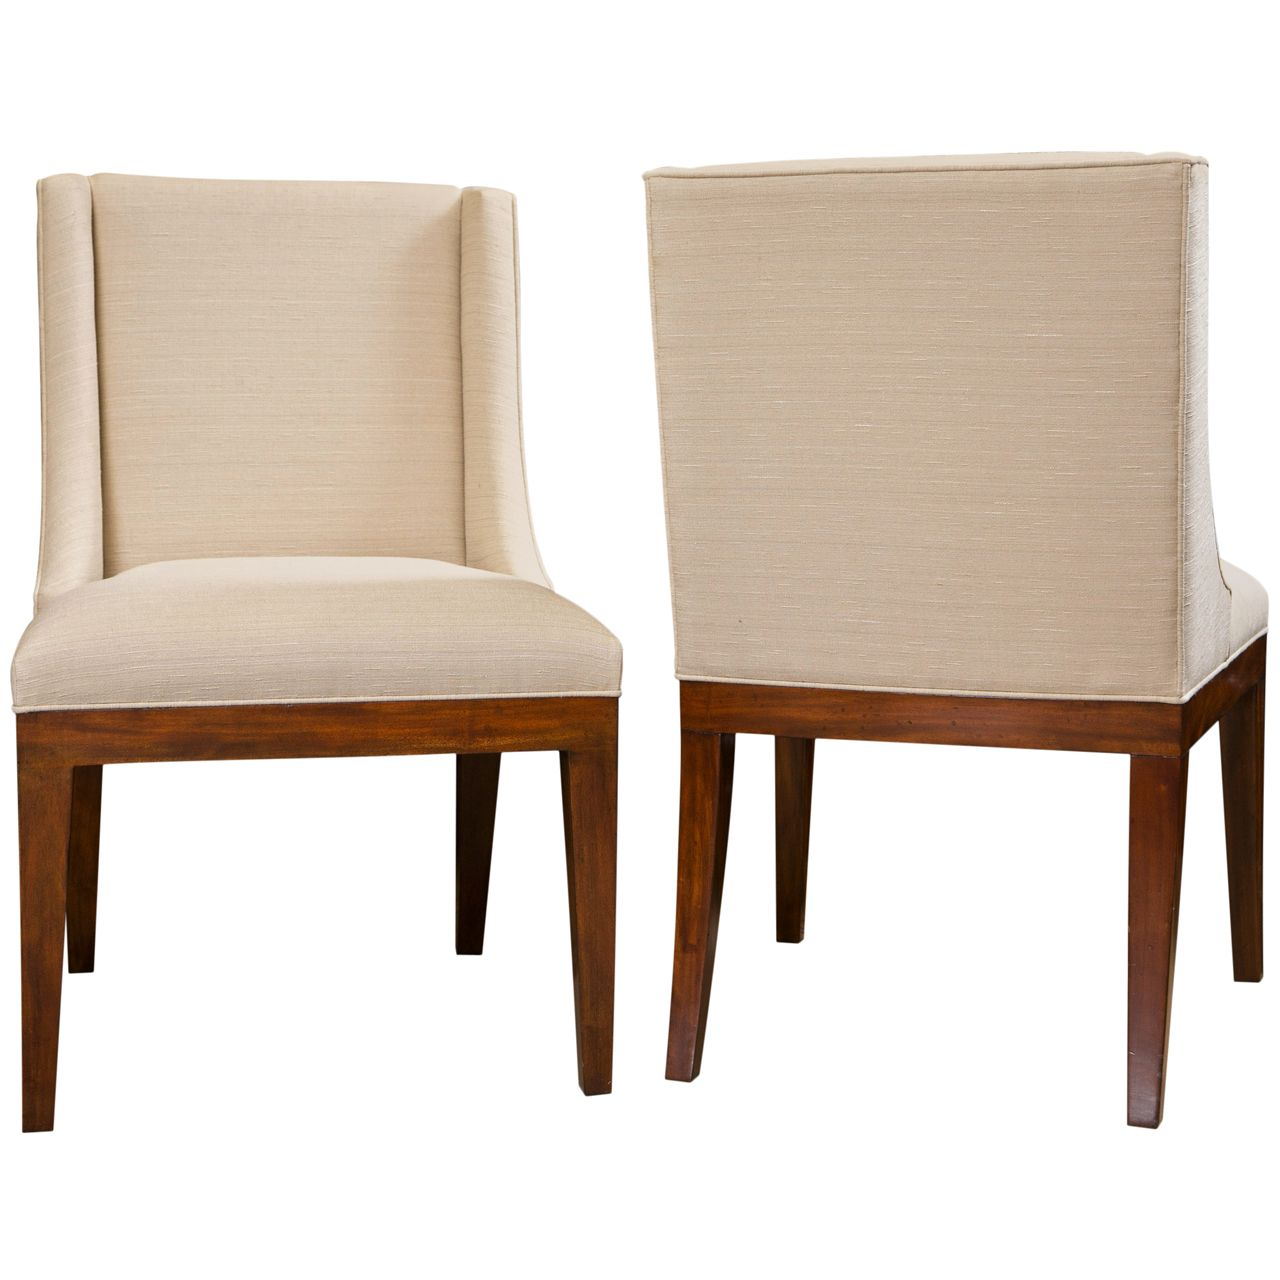 Uncategorized Modern Upholstered Dining Chairs set of 6 classic modern upholstered dining chairs chairs